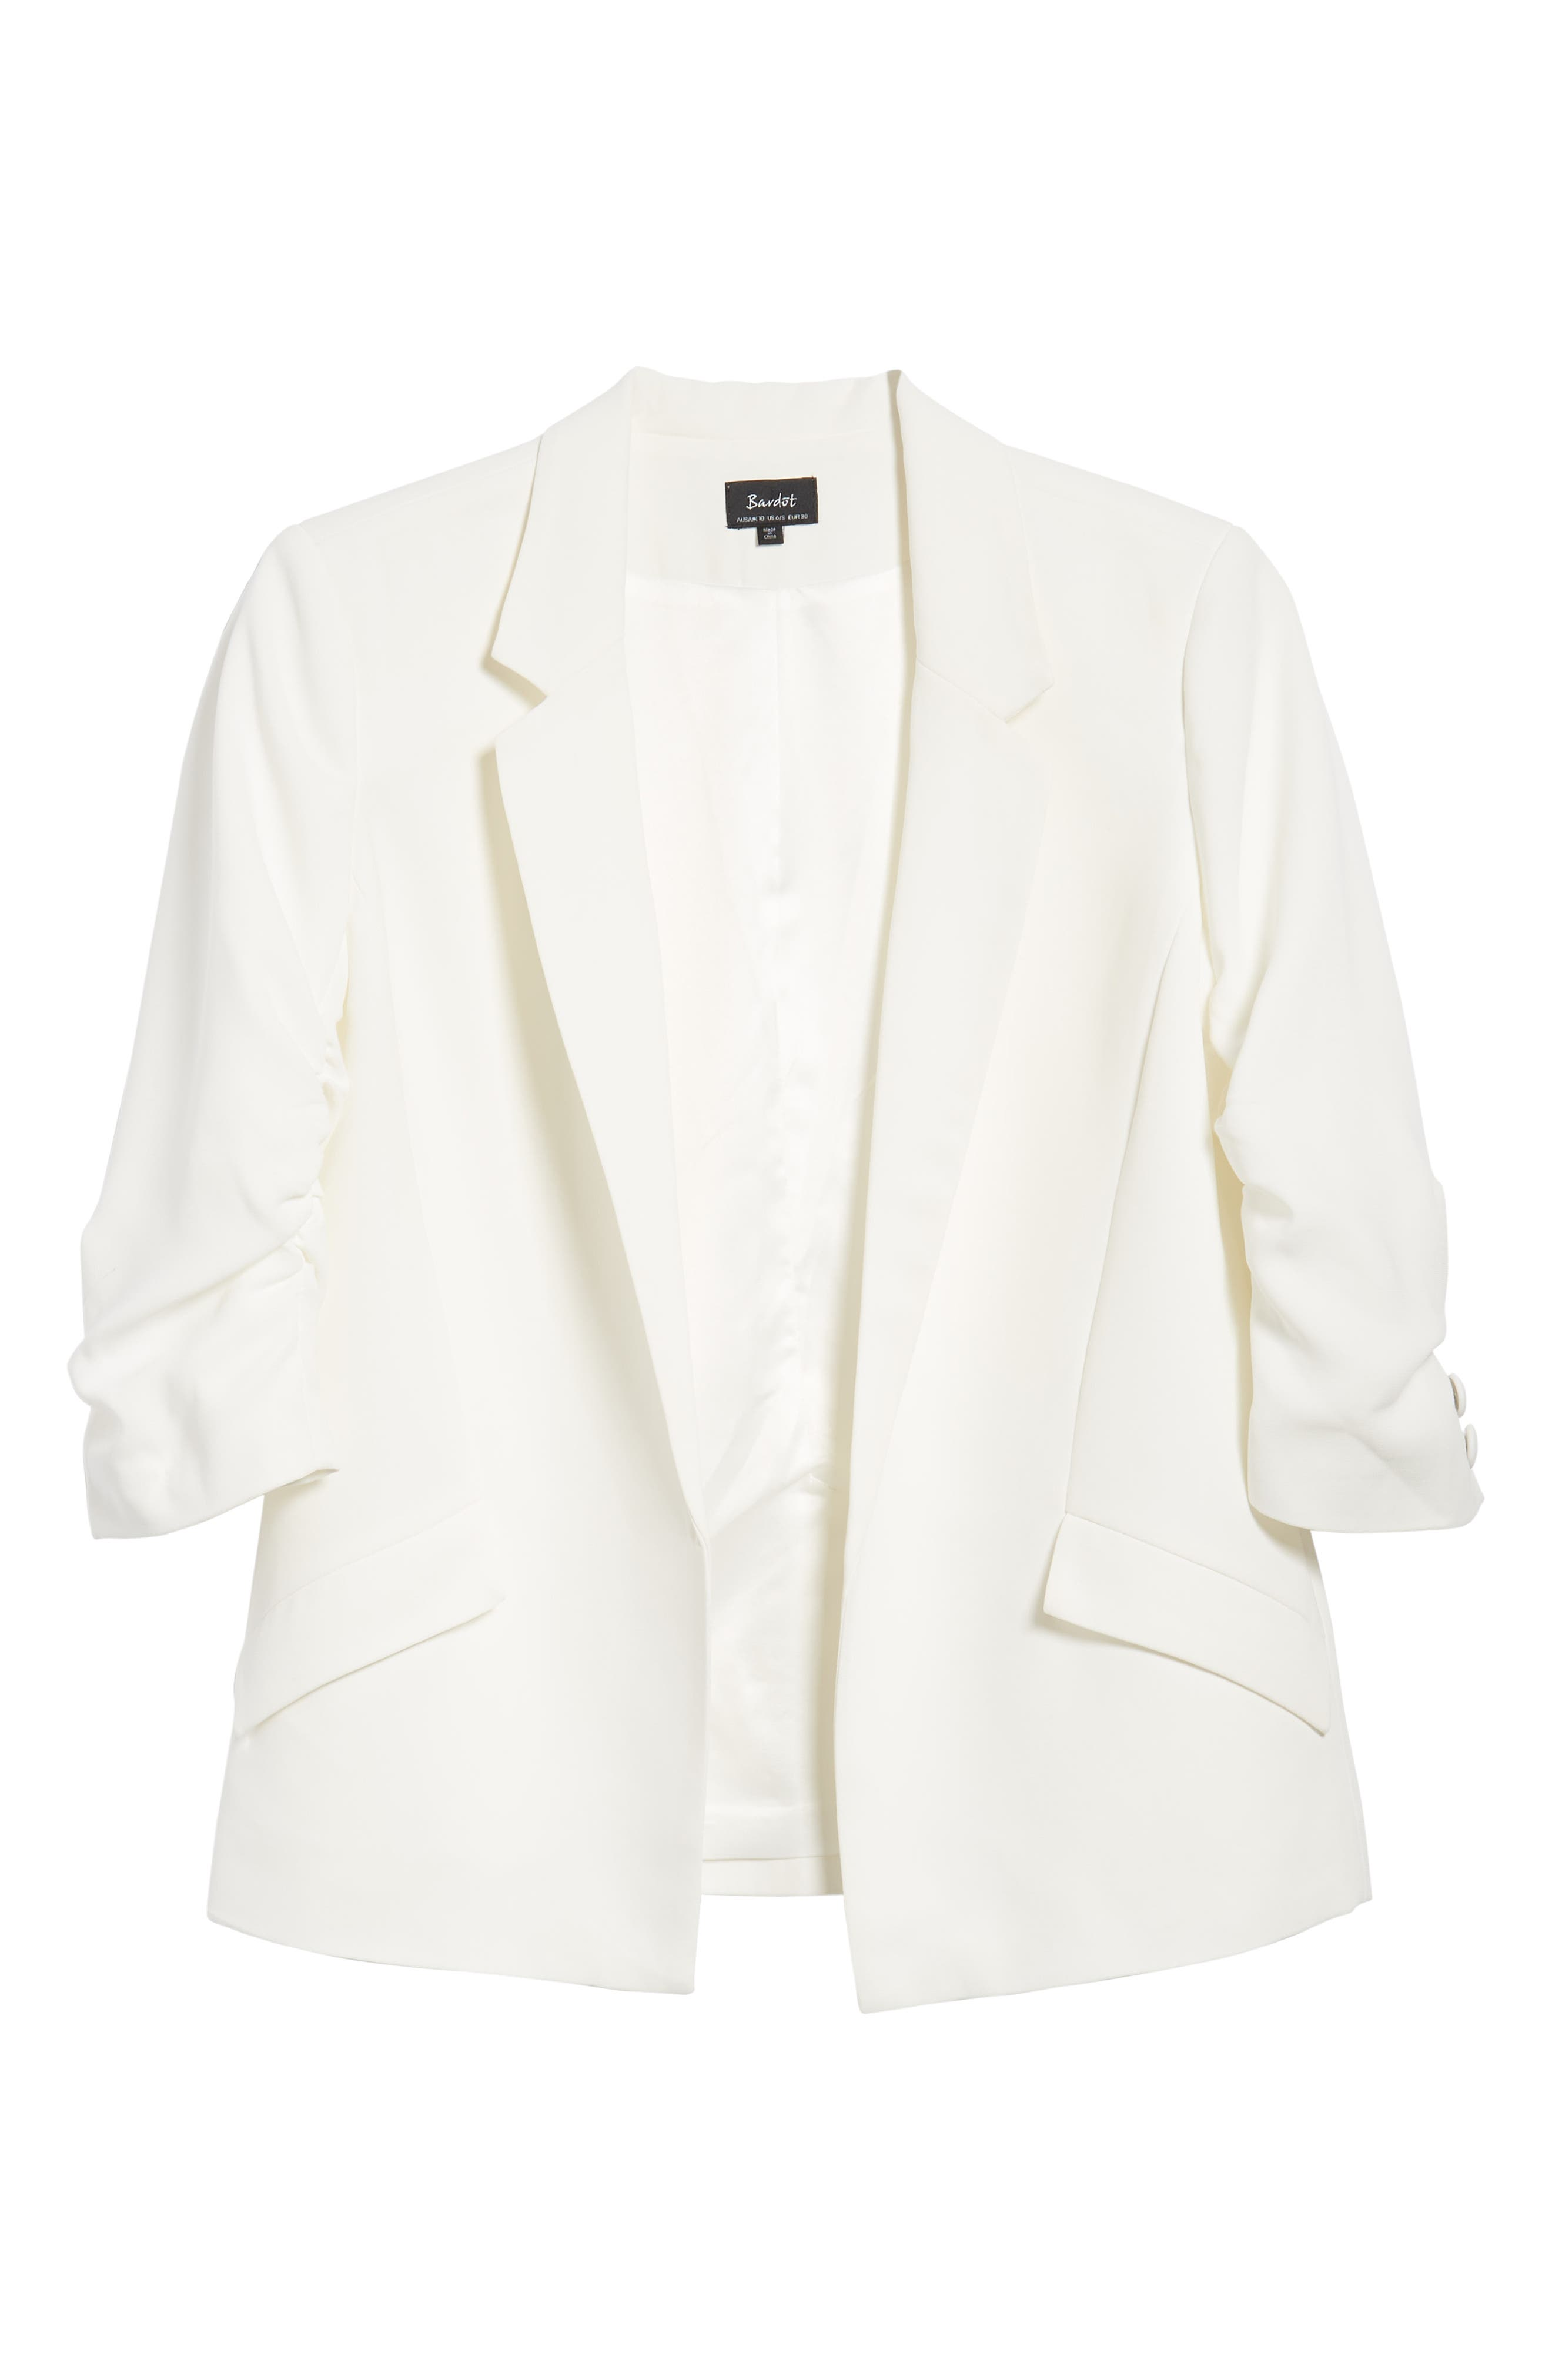 Ruched Sleeve Blazer,                             Alternate thumbnail 7, color,                             White